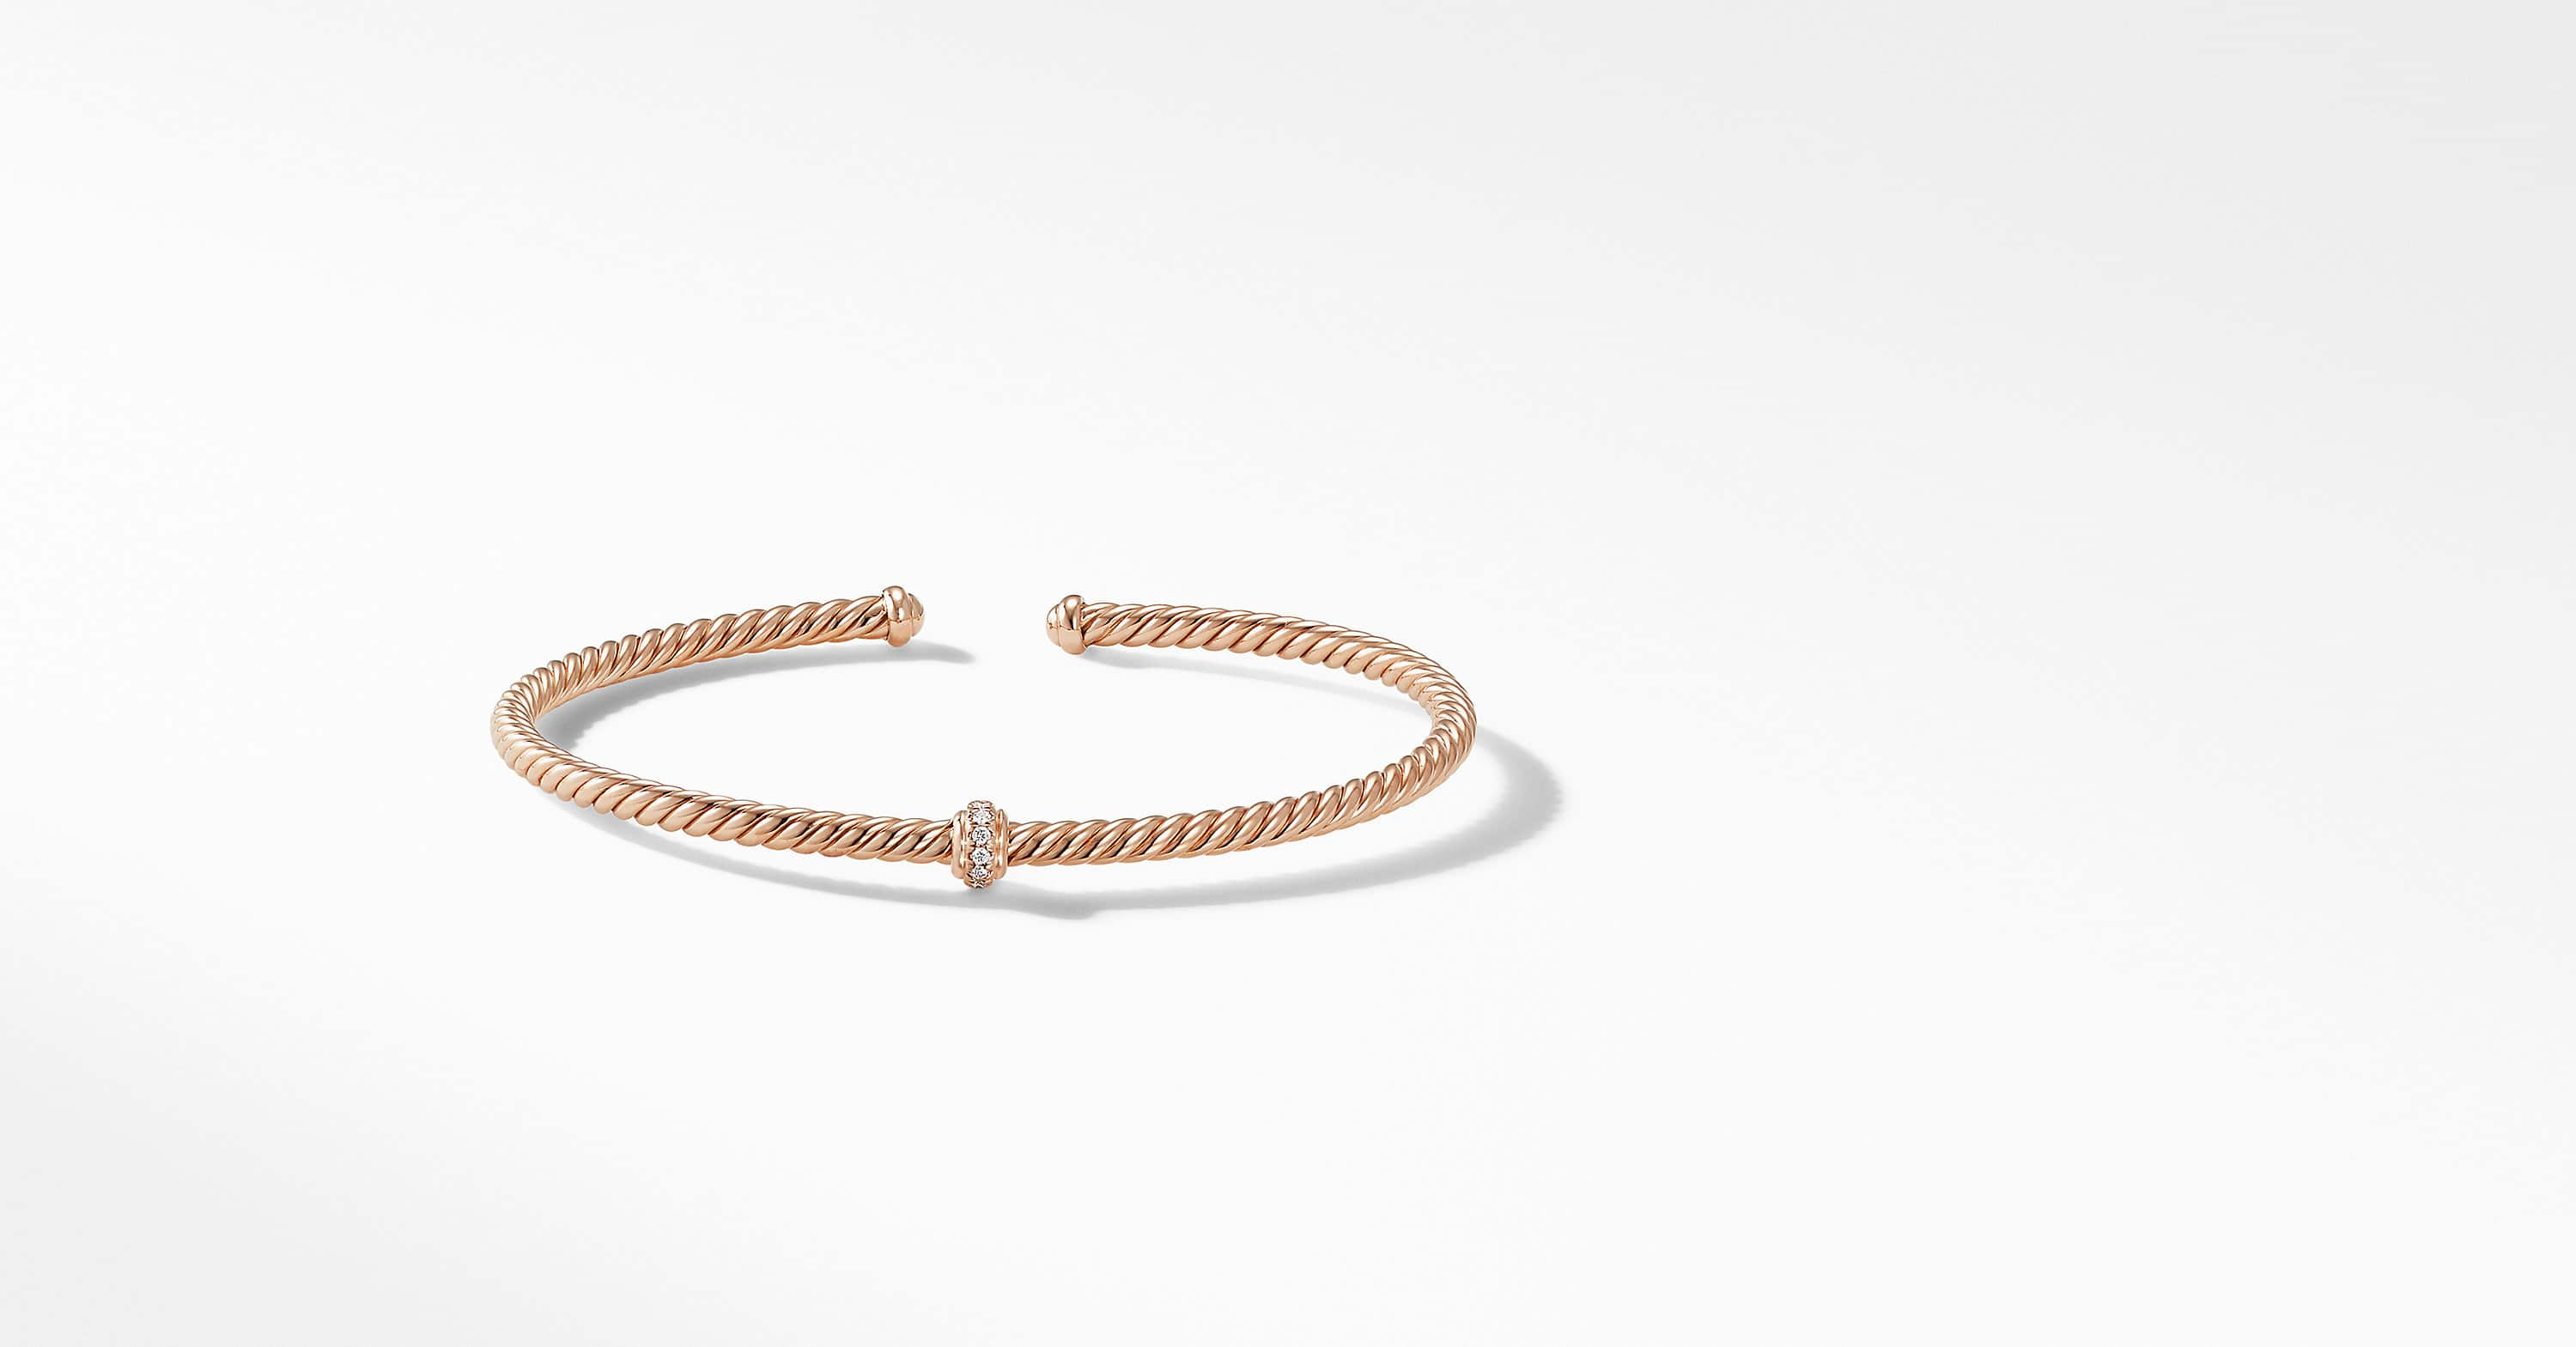 Bracelet « Cable » Spira avec motif central en or rose 18 carats avec diamants, 3 mm